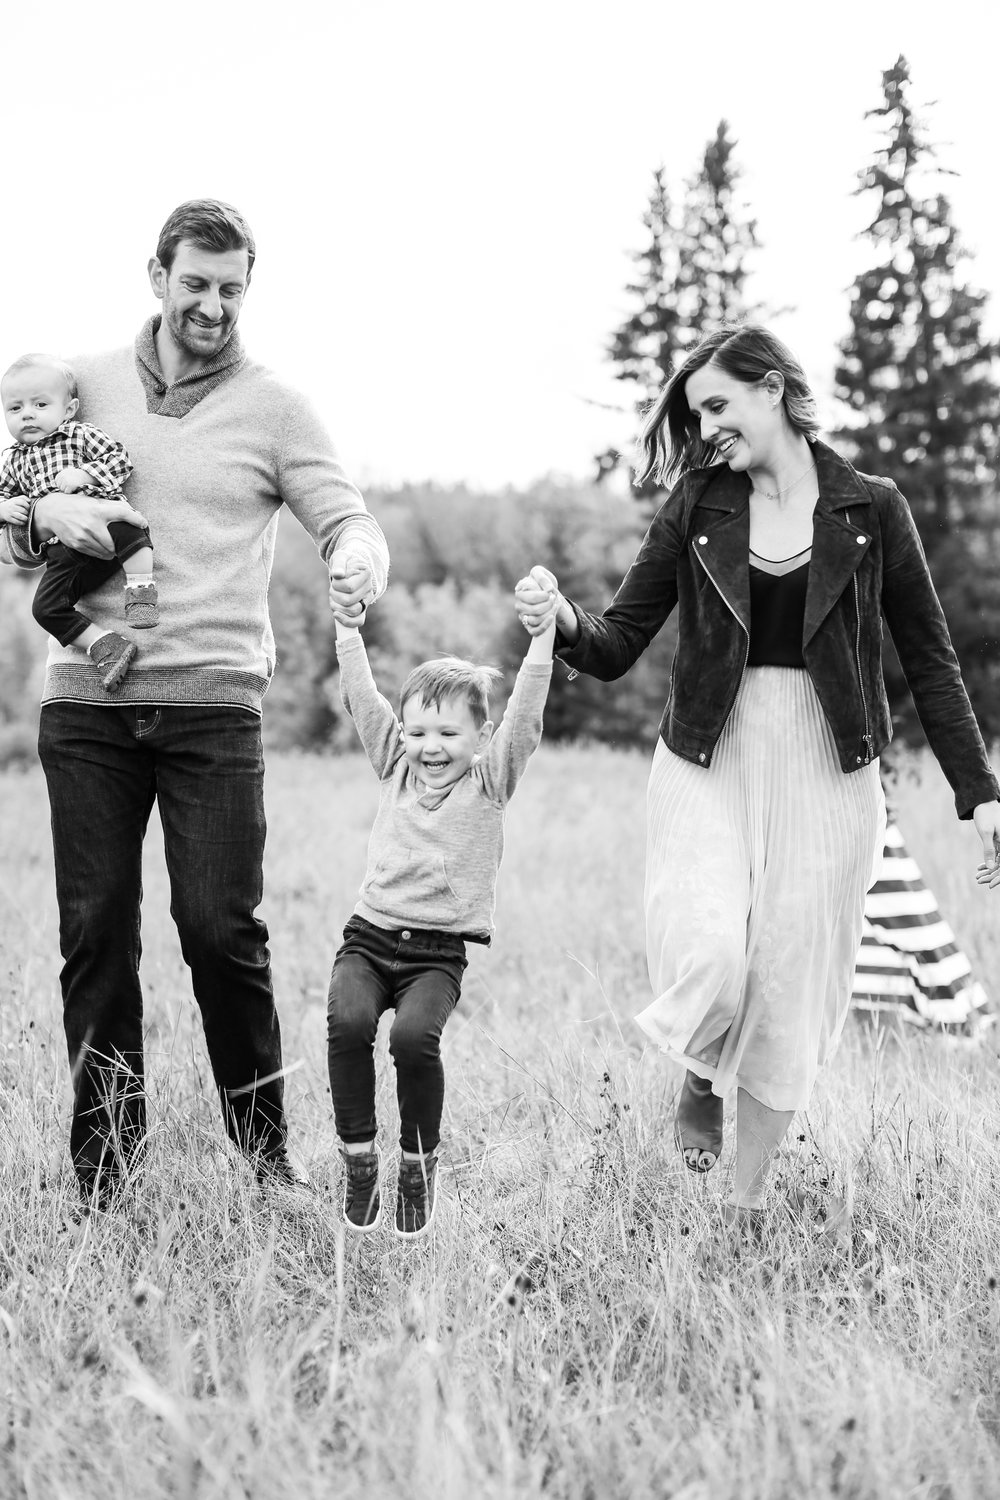 Fall-Family-Creative-Lindsay_Skeans_Photography-12.jpg